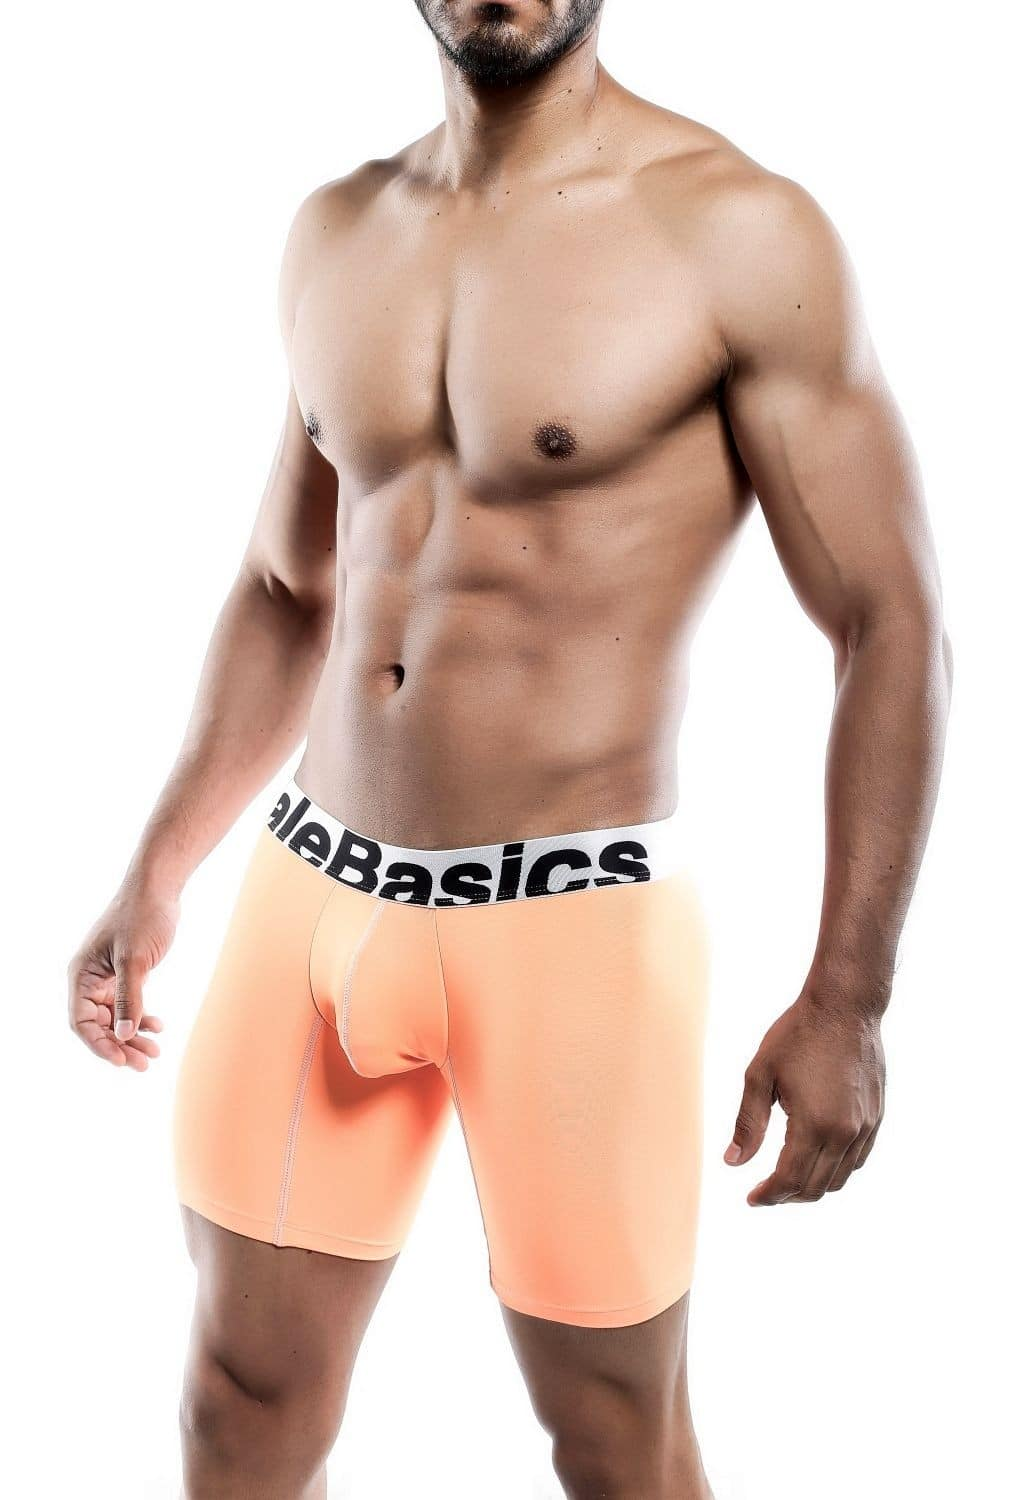 MaleBasics Underwear MaleBasics Microfiber Boxer Brief Men's Sexy Underwear